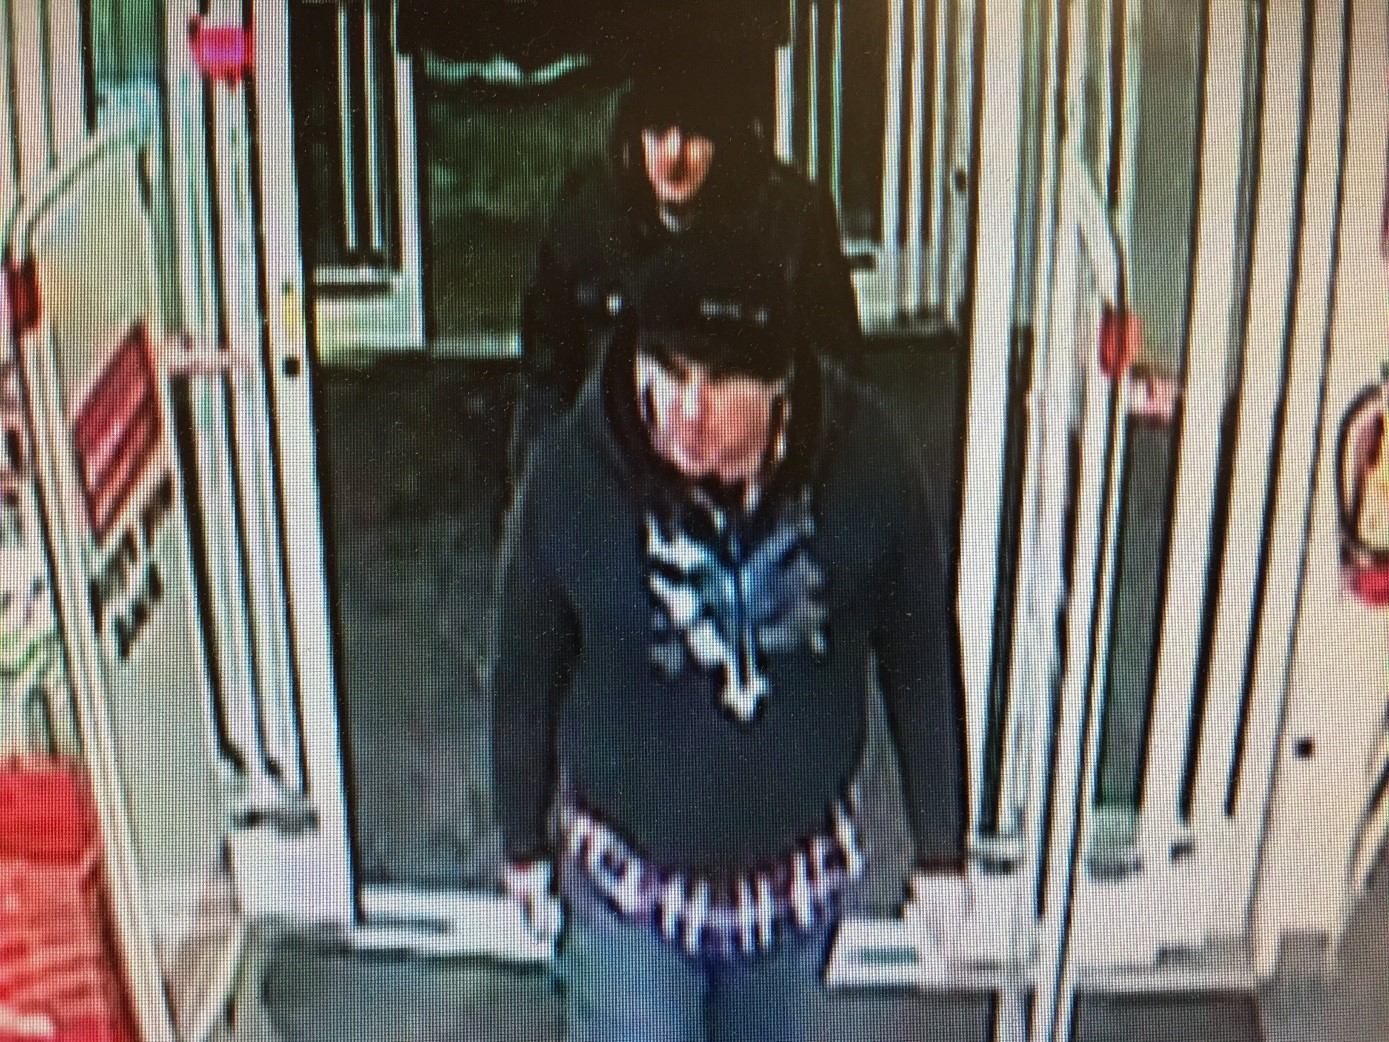 CVS Larceny Suspects